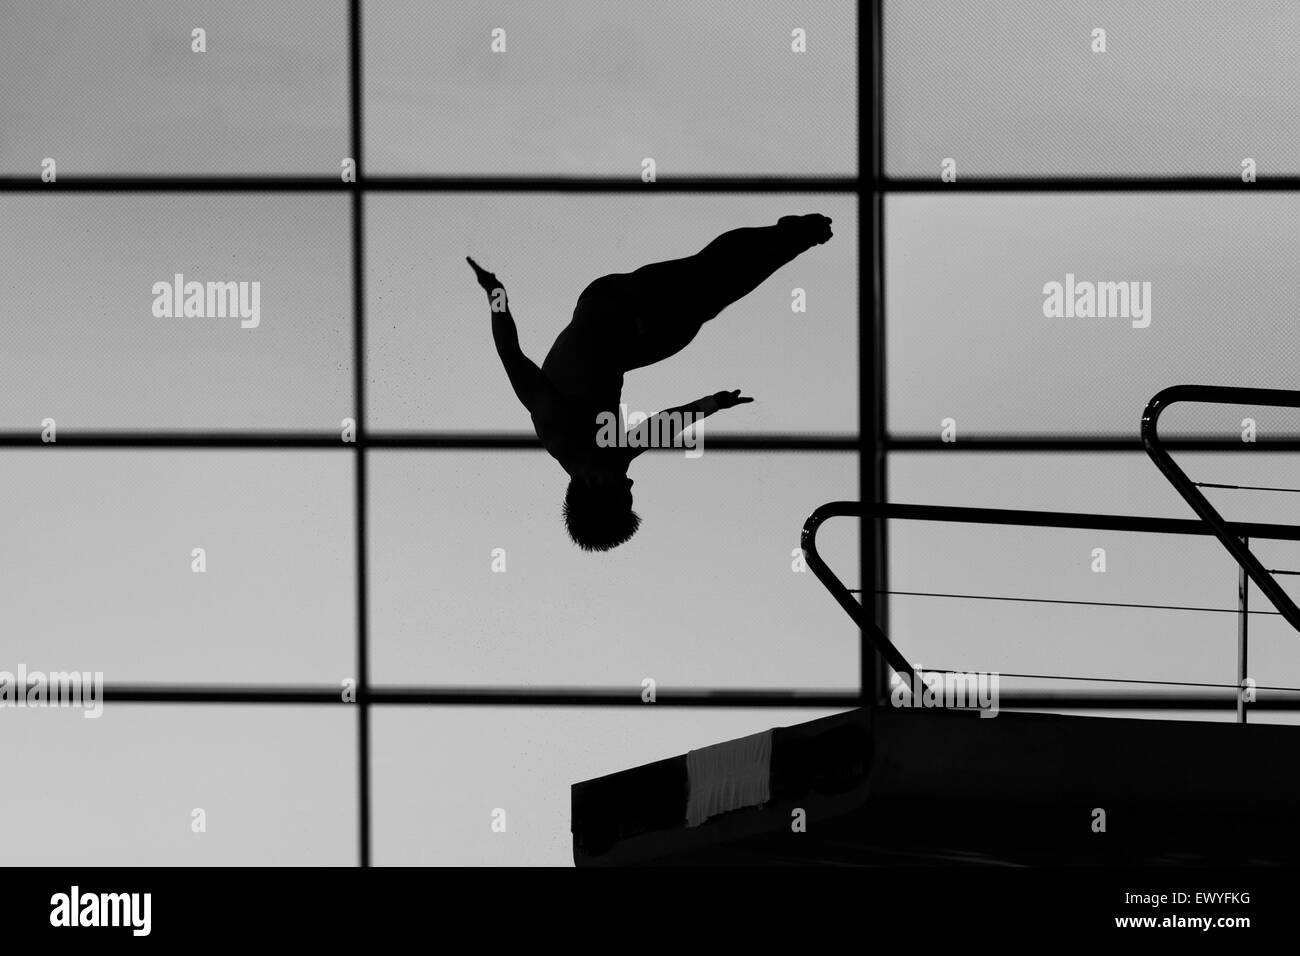 The silhouette of a diver competing on the 10M board at the Diving World Series in London on May 2, 2015. - Stock Image